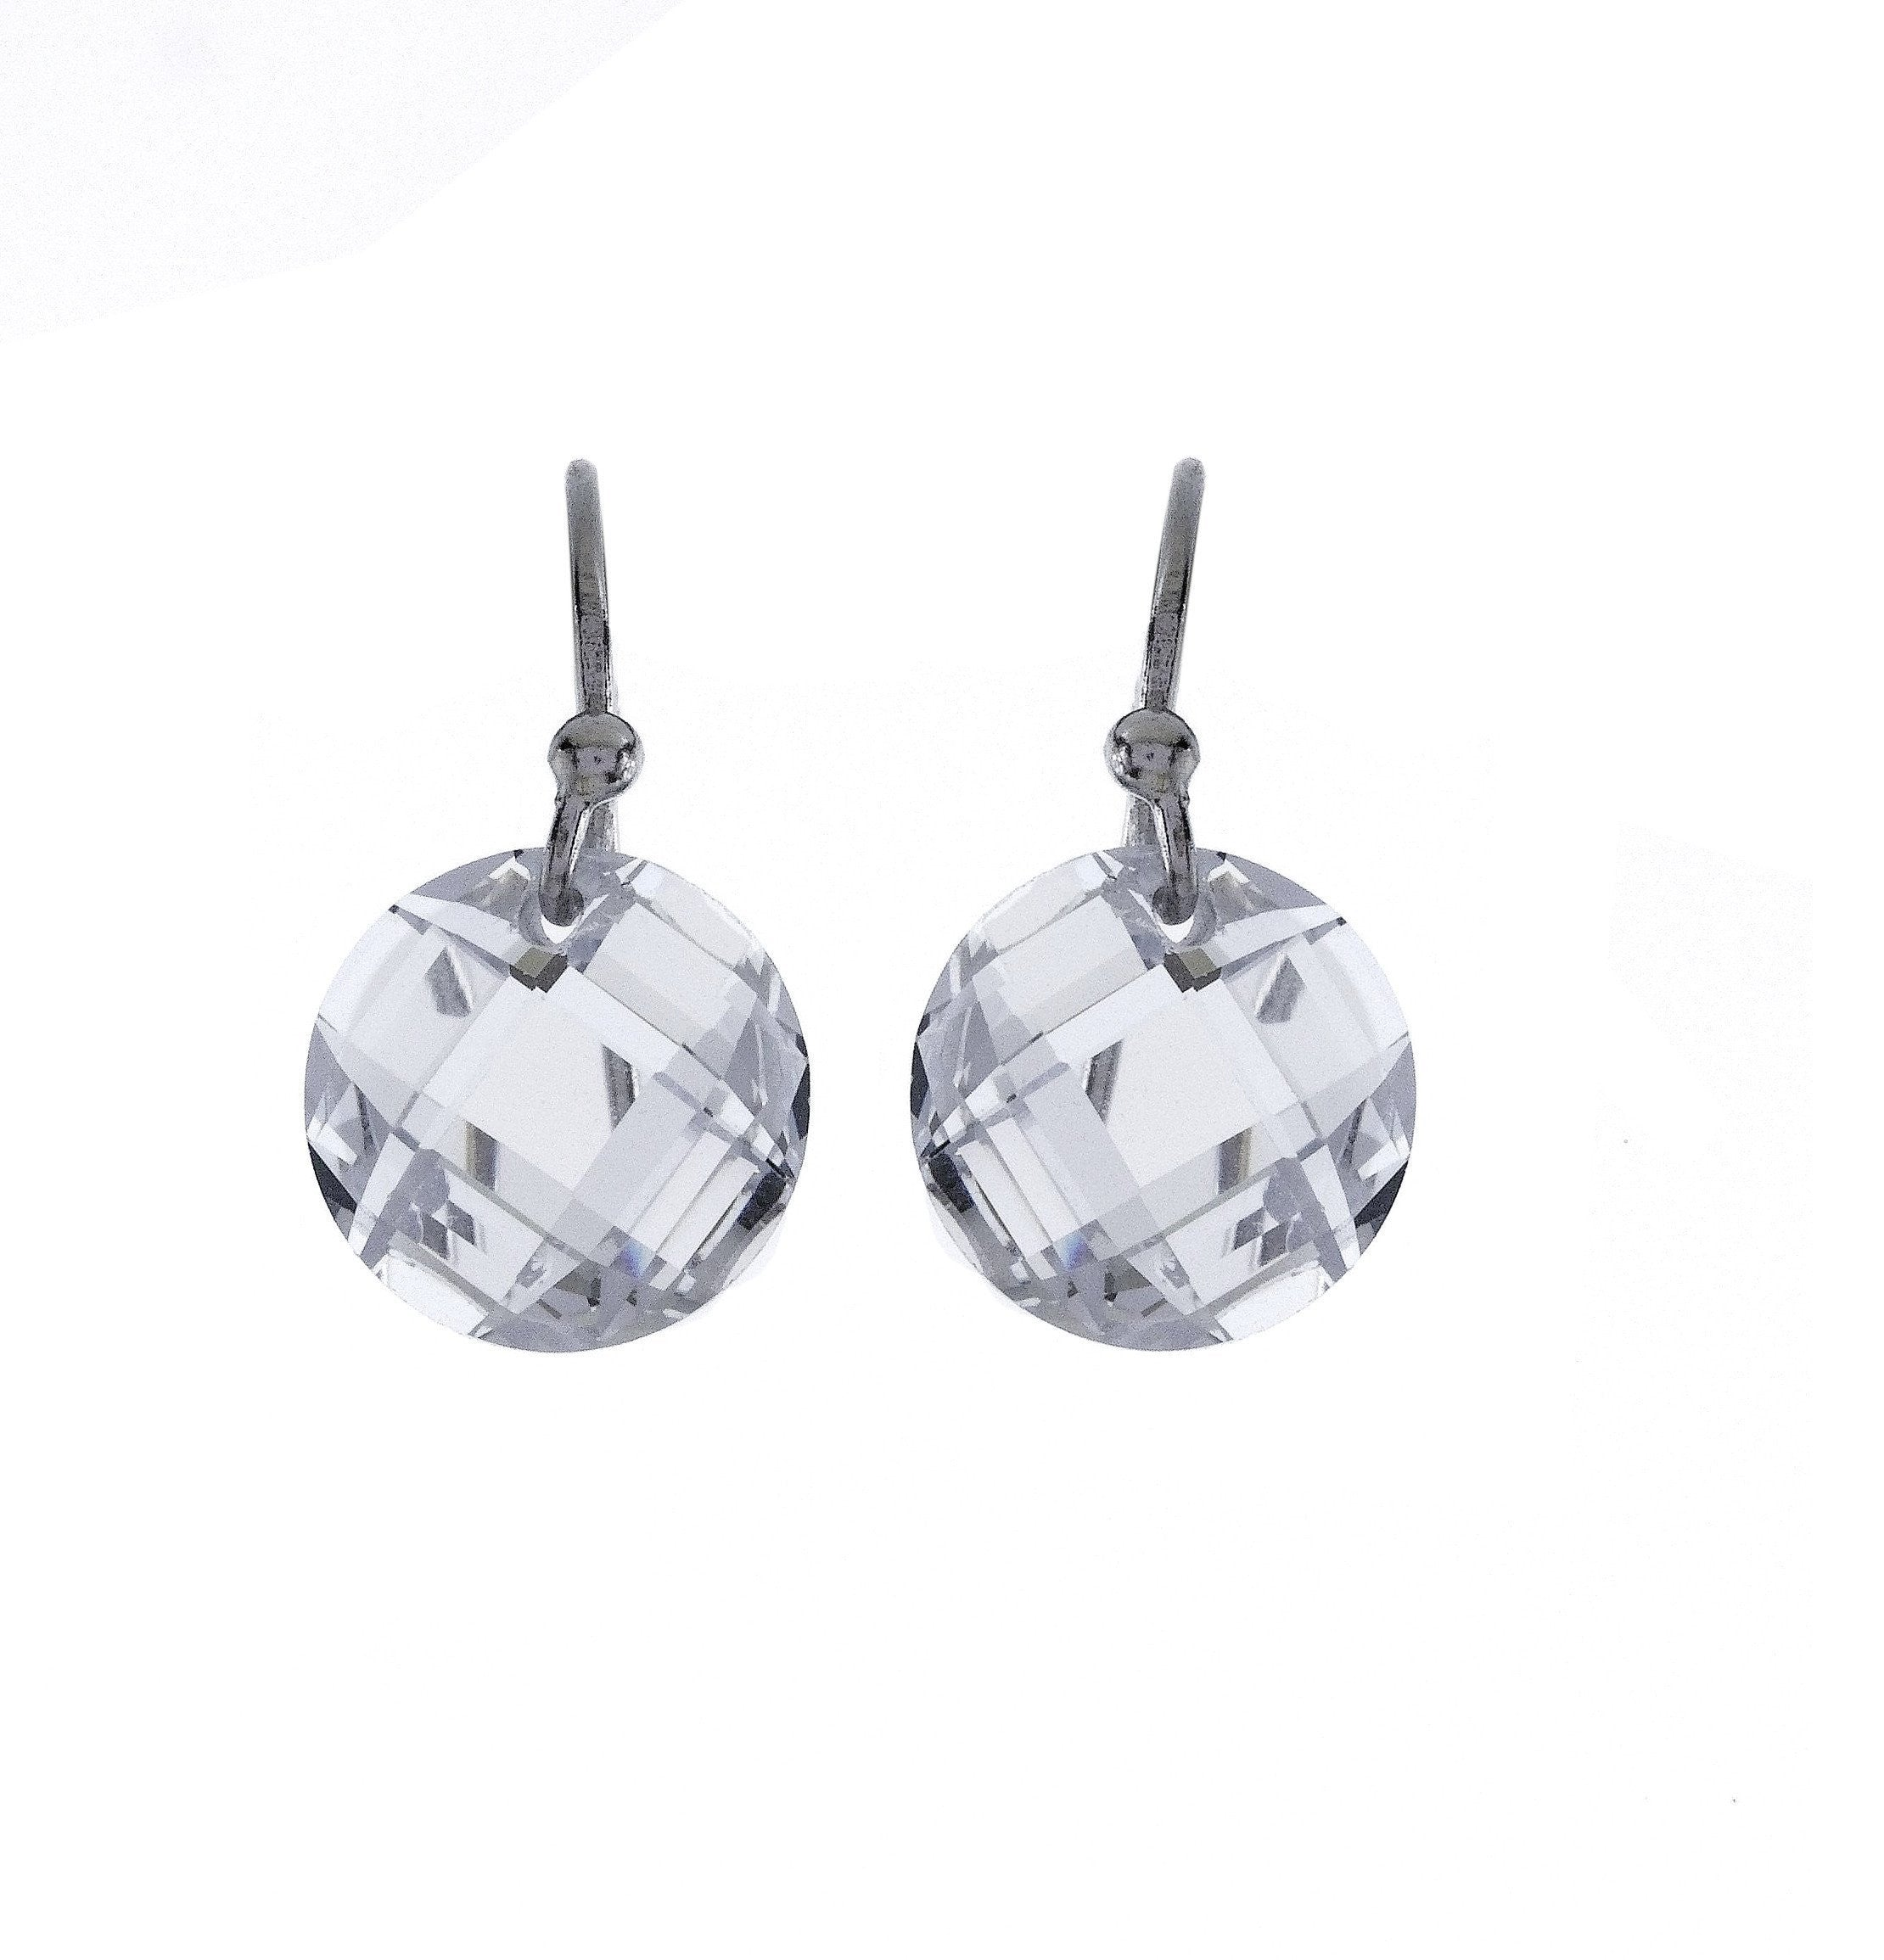 Round Cubic Zirconia Dangle Earrings with Sterling Silver Backs